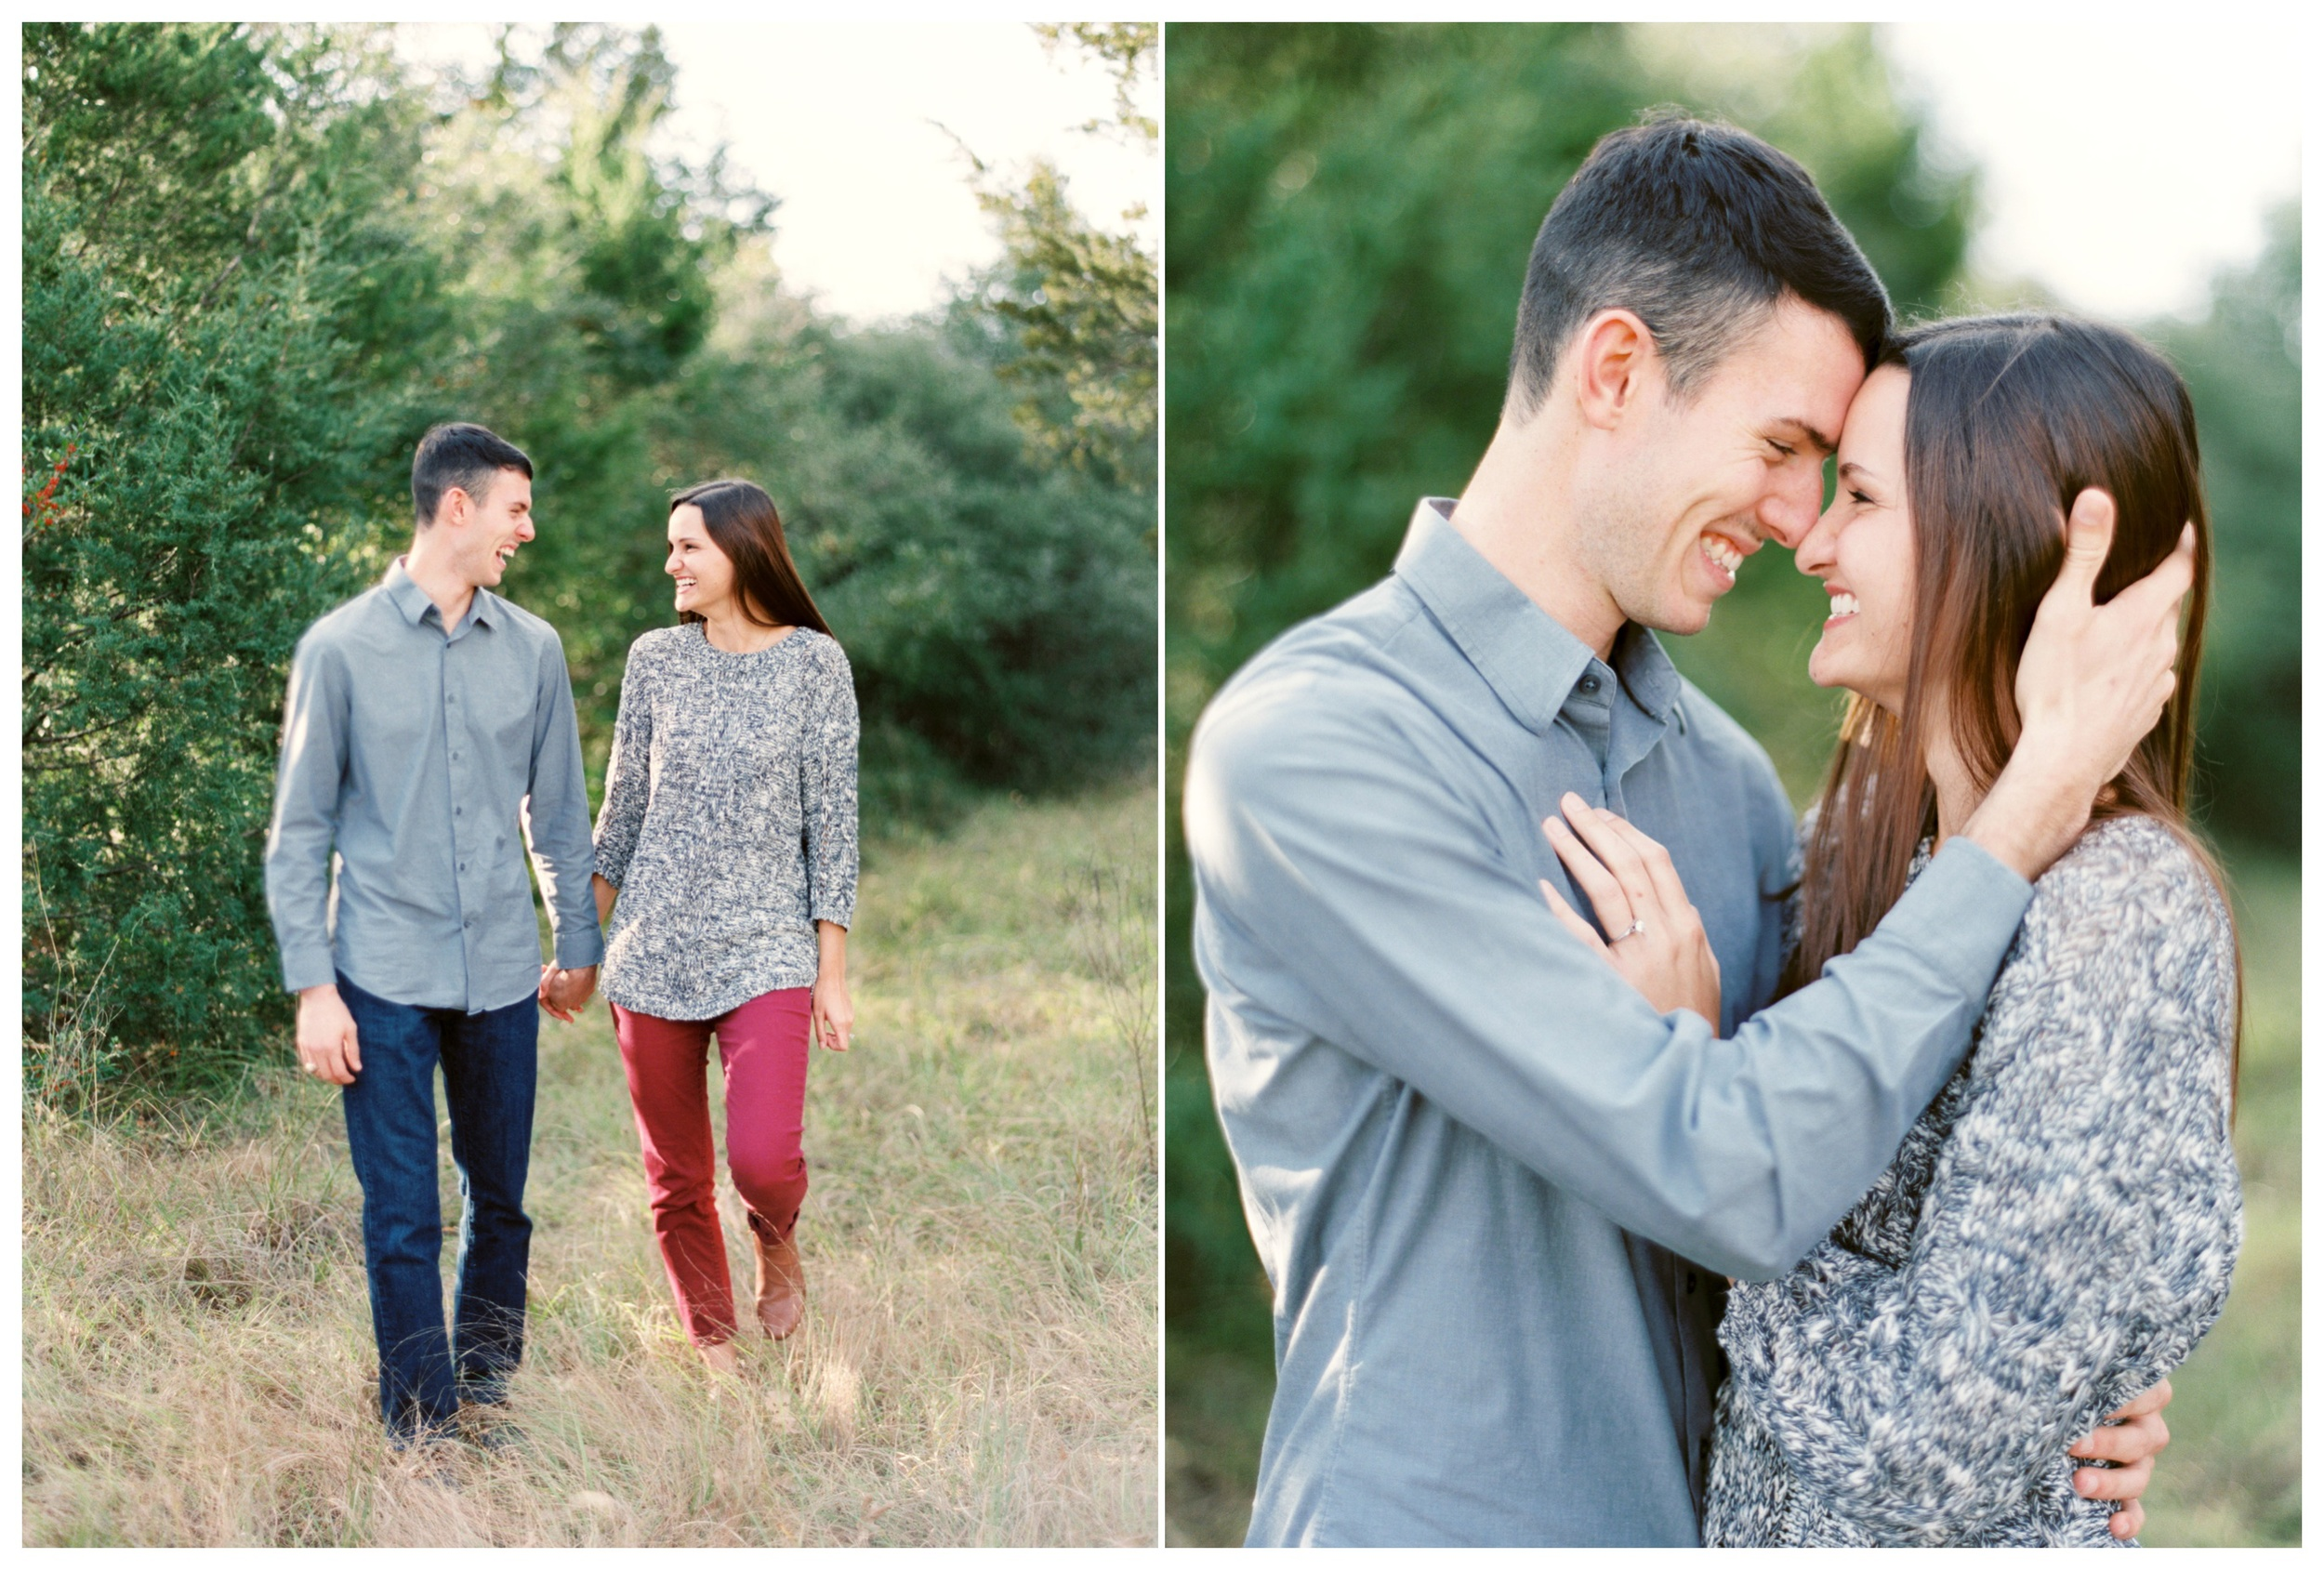 Sarah Best Photography - Brittany & Jonathan's Engagements-203_STP.jpg